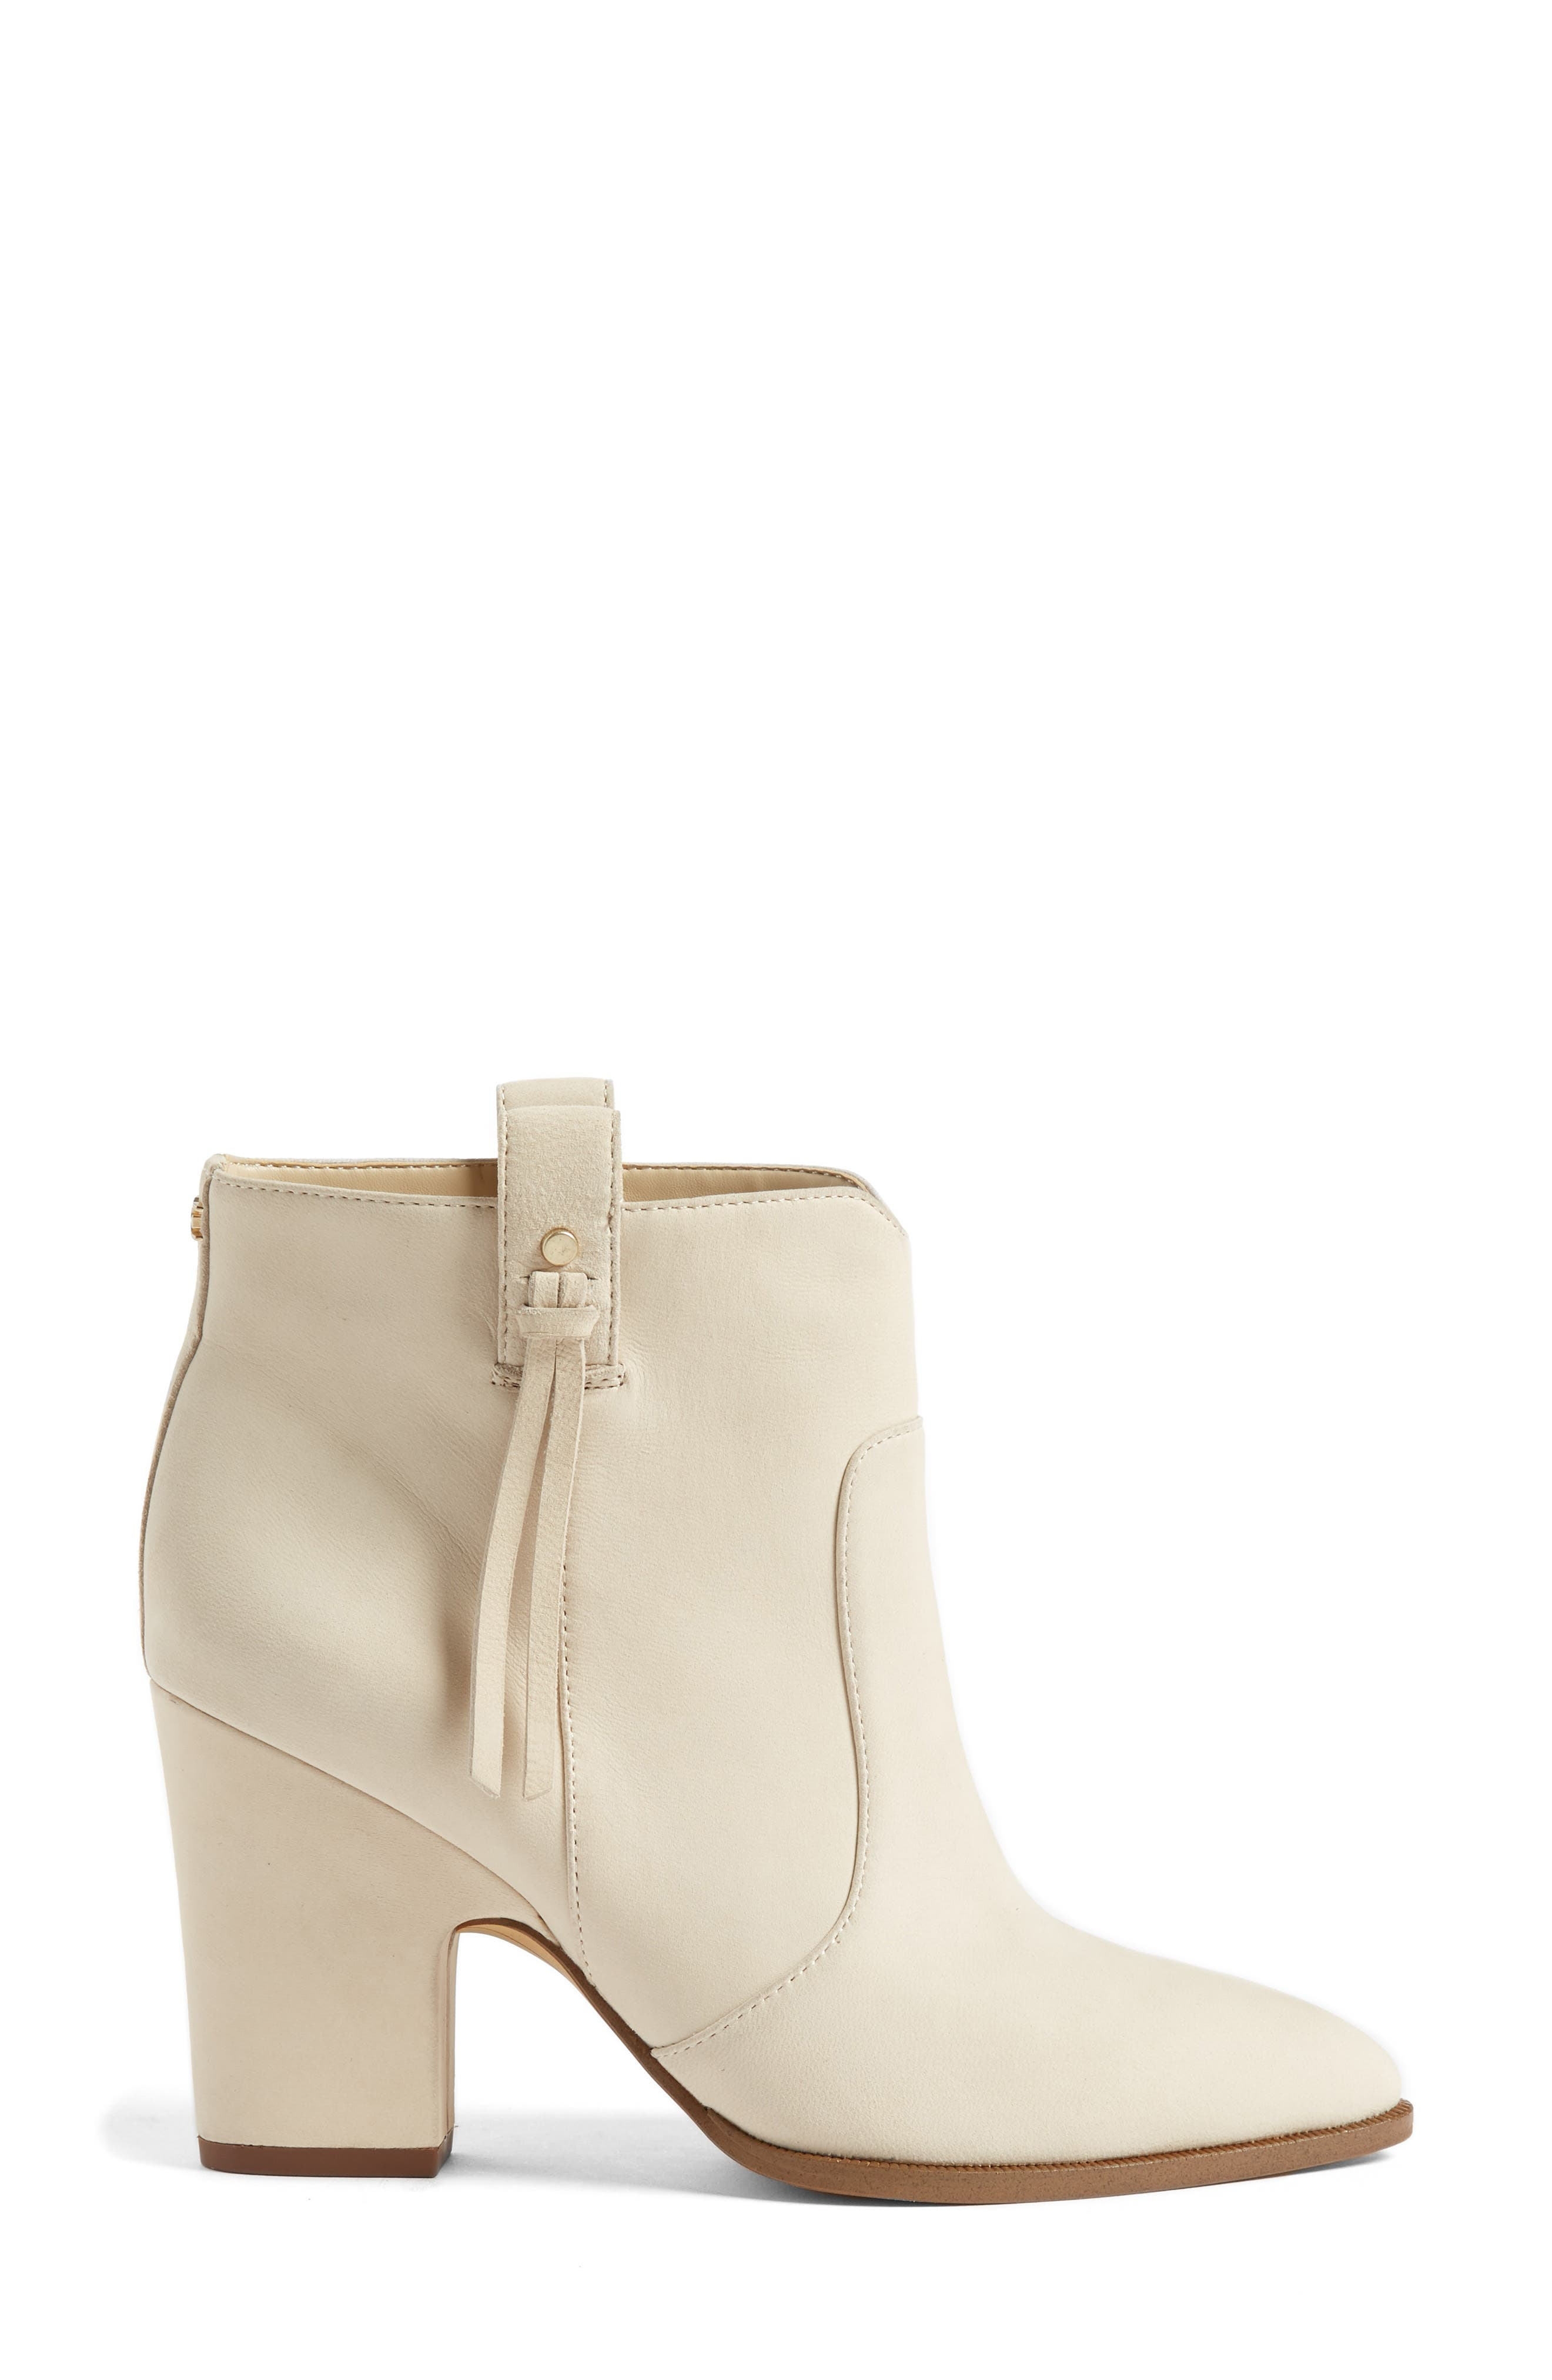 SAM EDELMAN,                             Niomi Bootie,                             Alternate thumbnail 3, color,                             900